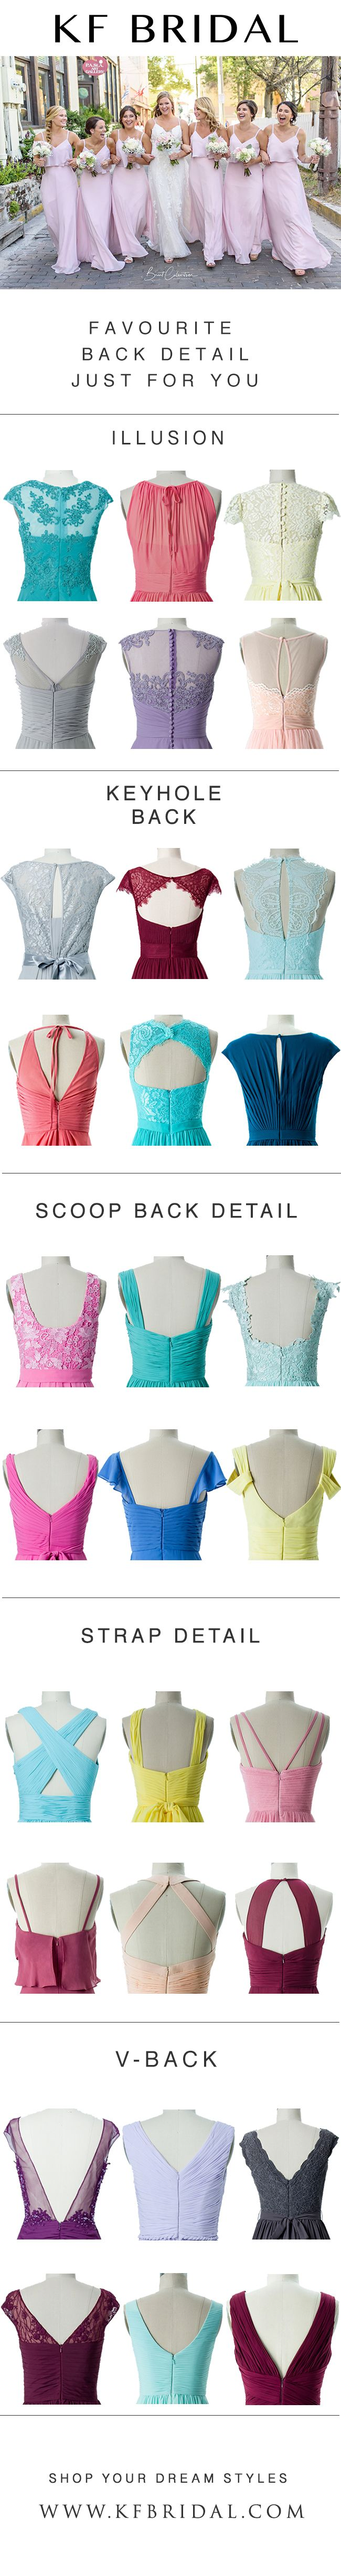 Check Out Selection of Back Details! Only In January, Sale up to 50% OFF+ FREE SHIPPING!